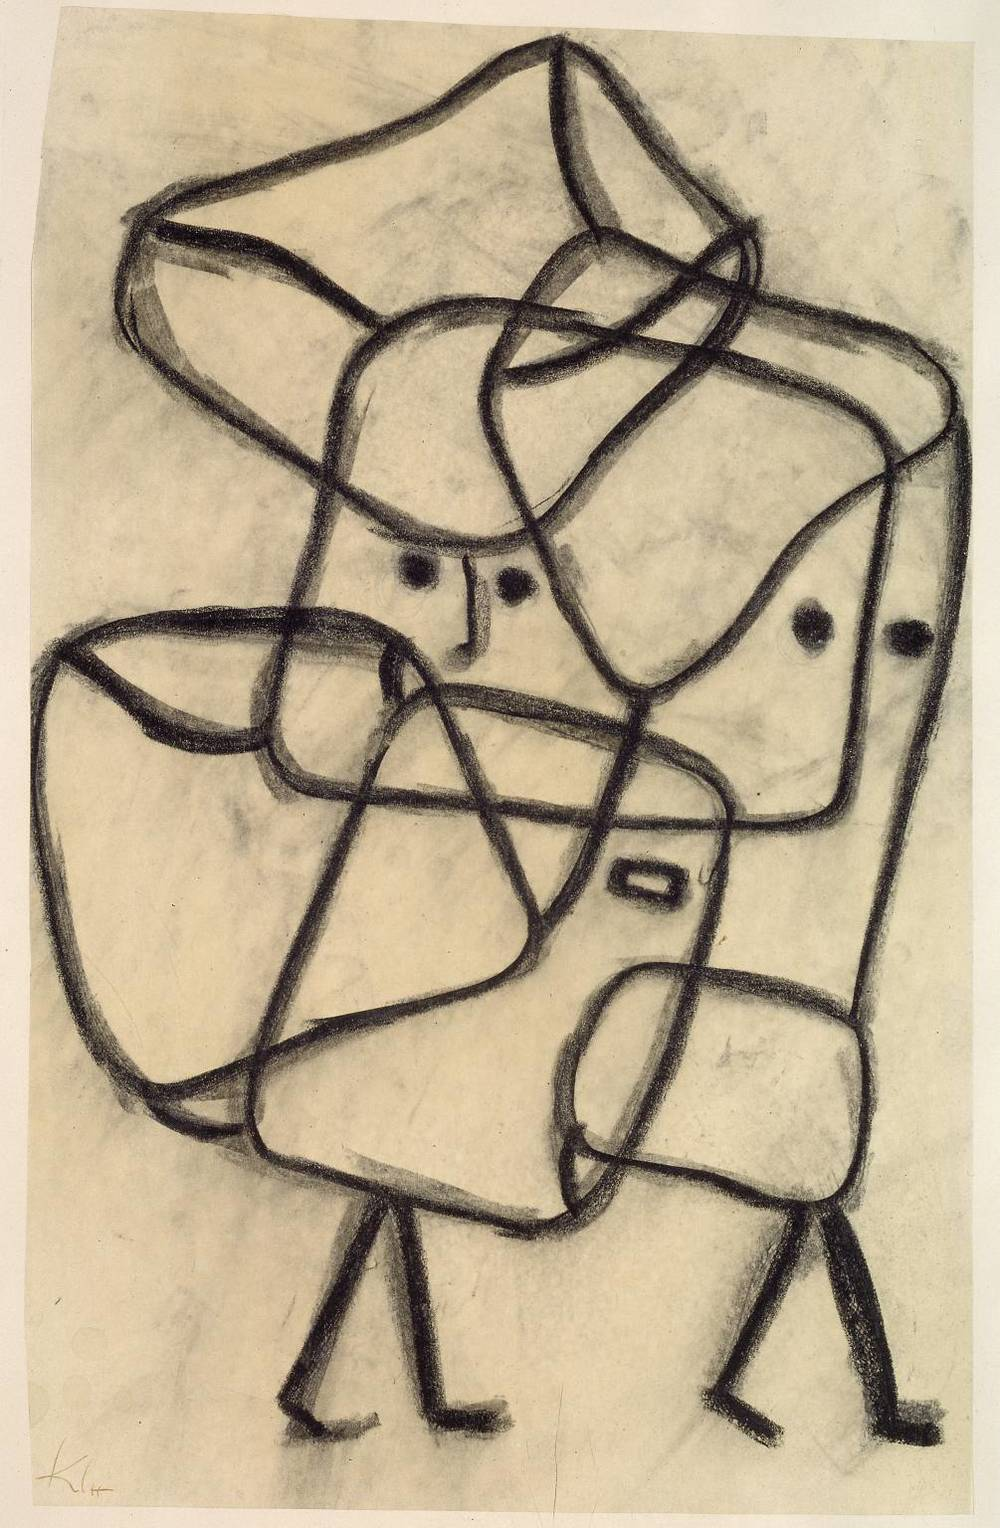 Burdened Children 1930Paul Klee 1879-1940 Bequeathed by Elly Kahnweiler 1991 to form part of the gift of Gustav and Elly Kahnweiler, accessioned 1994 via Tate.org